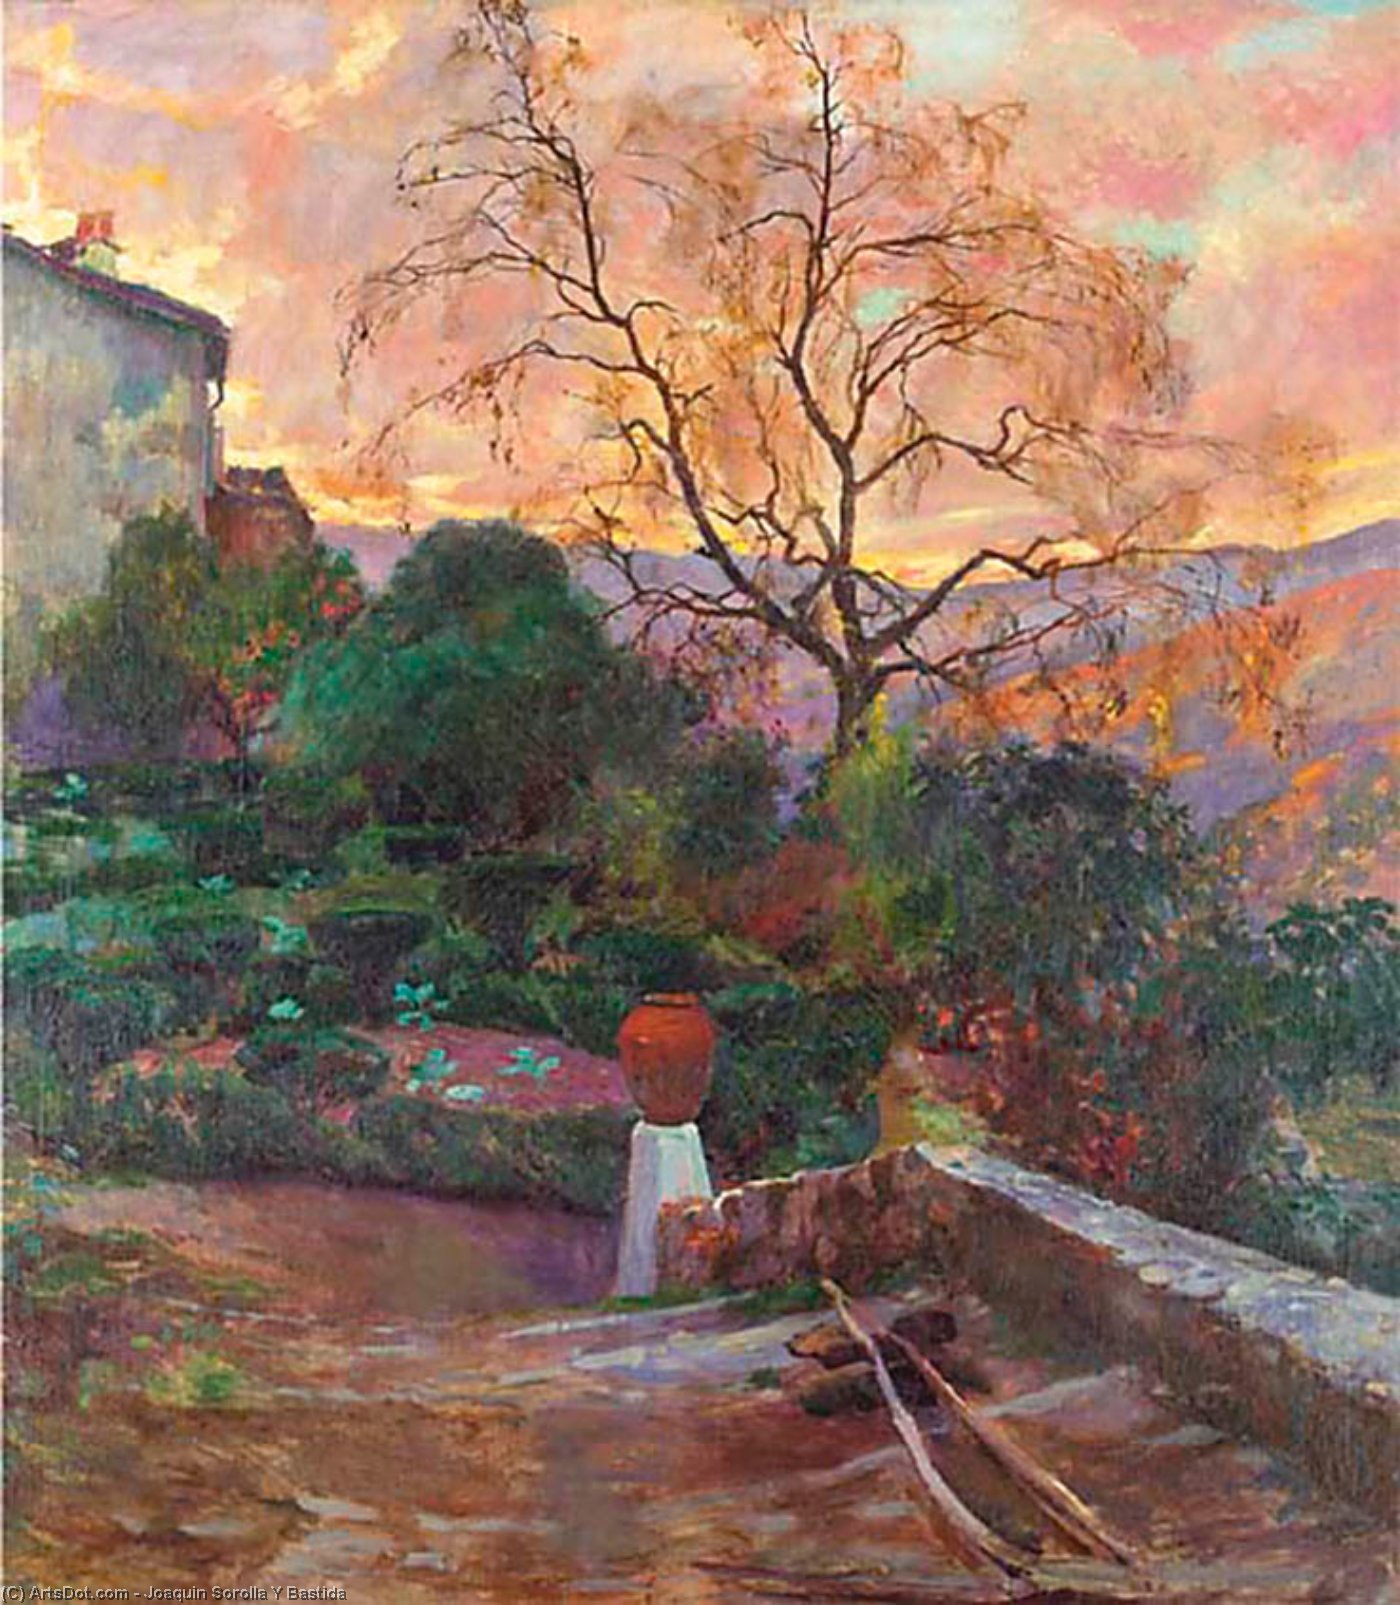 Garden of Spanish Farmhouse, Oil On Canvas by Joaquin Sorolla Y Bastida (1863-1923, Spain)